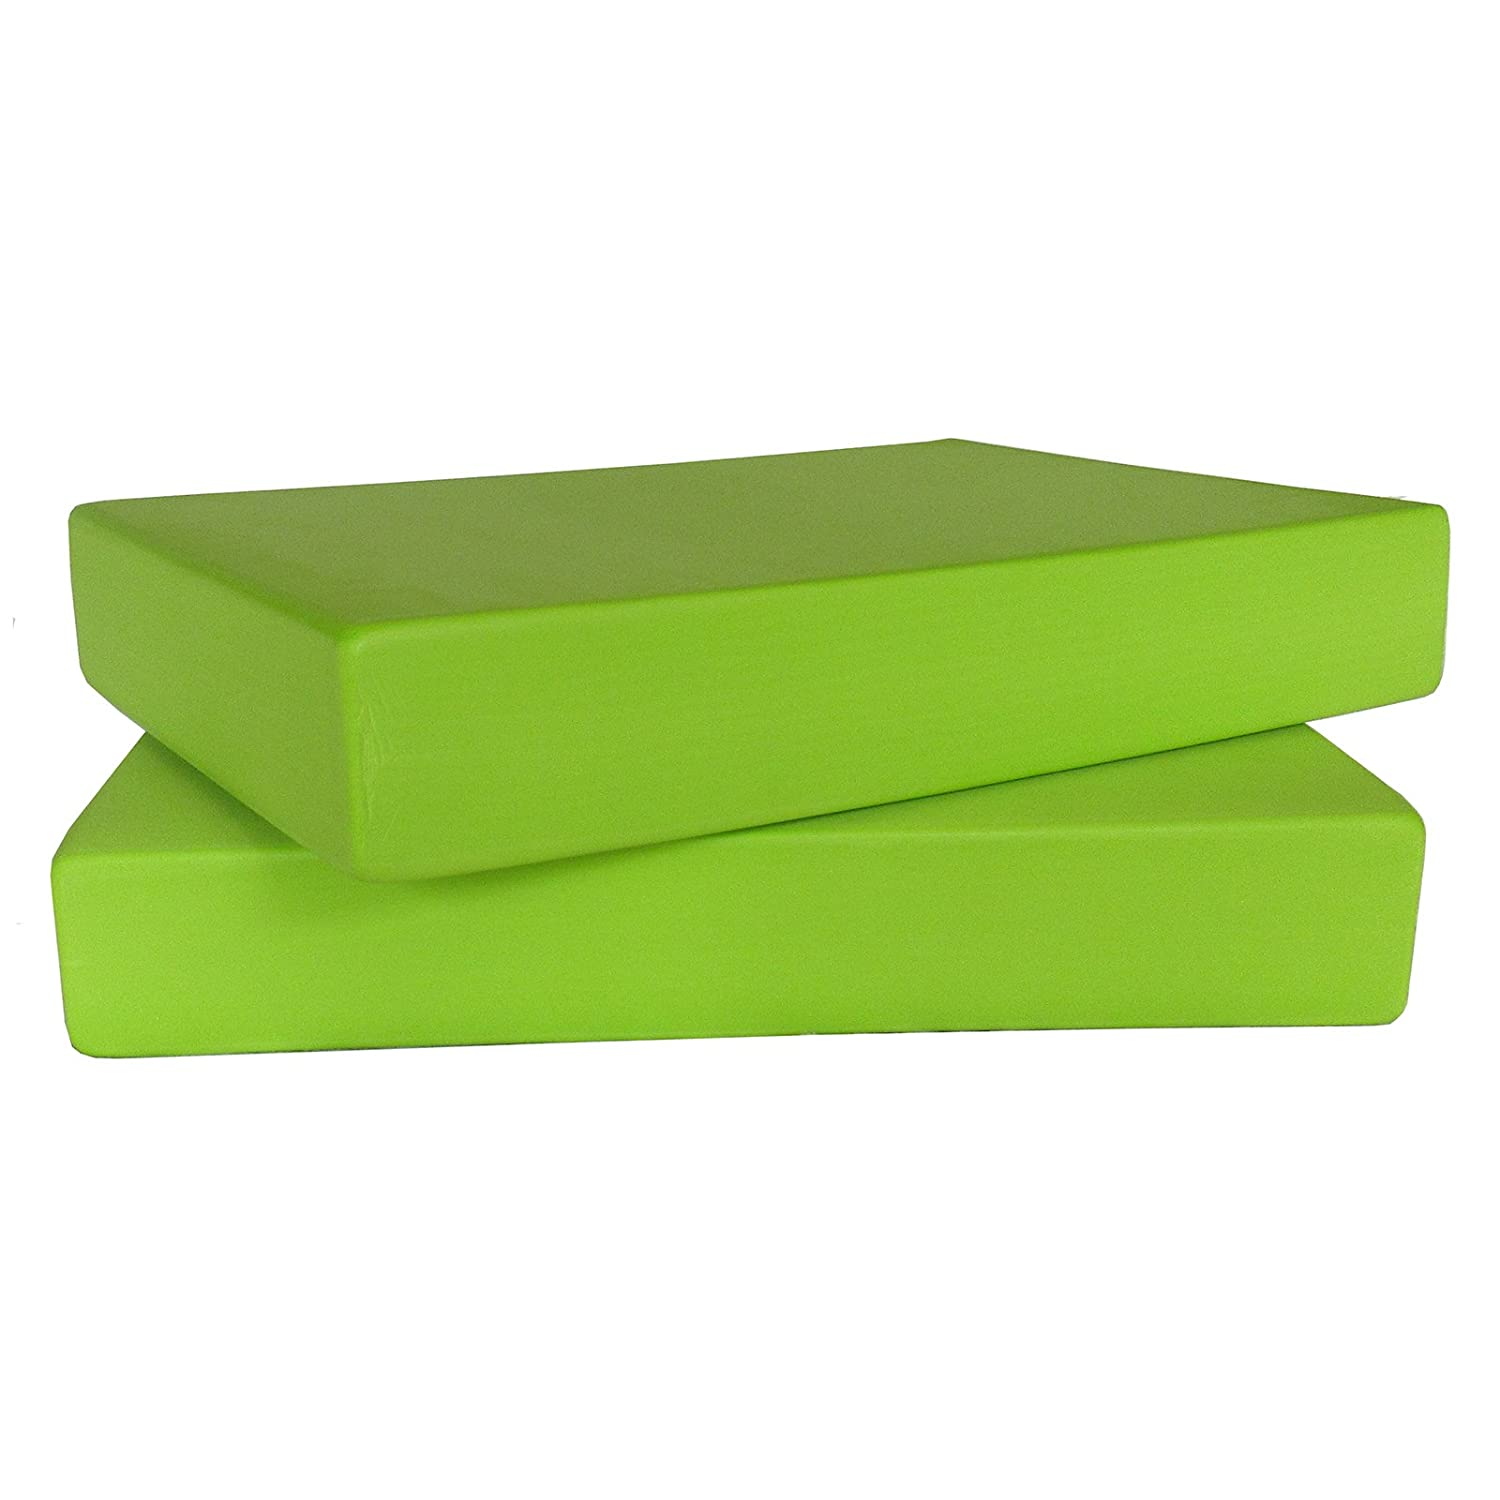 10 x Green EVA Foam FULL Yoga Blocks (WHOLESALE BOX) Ruth White Yoga Products Ltd